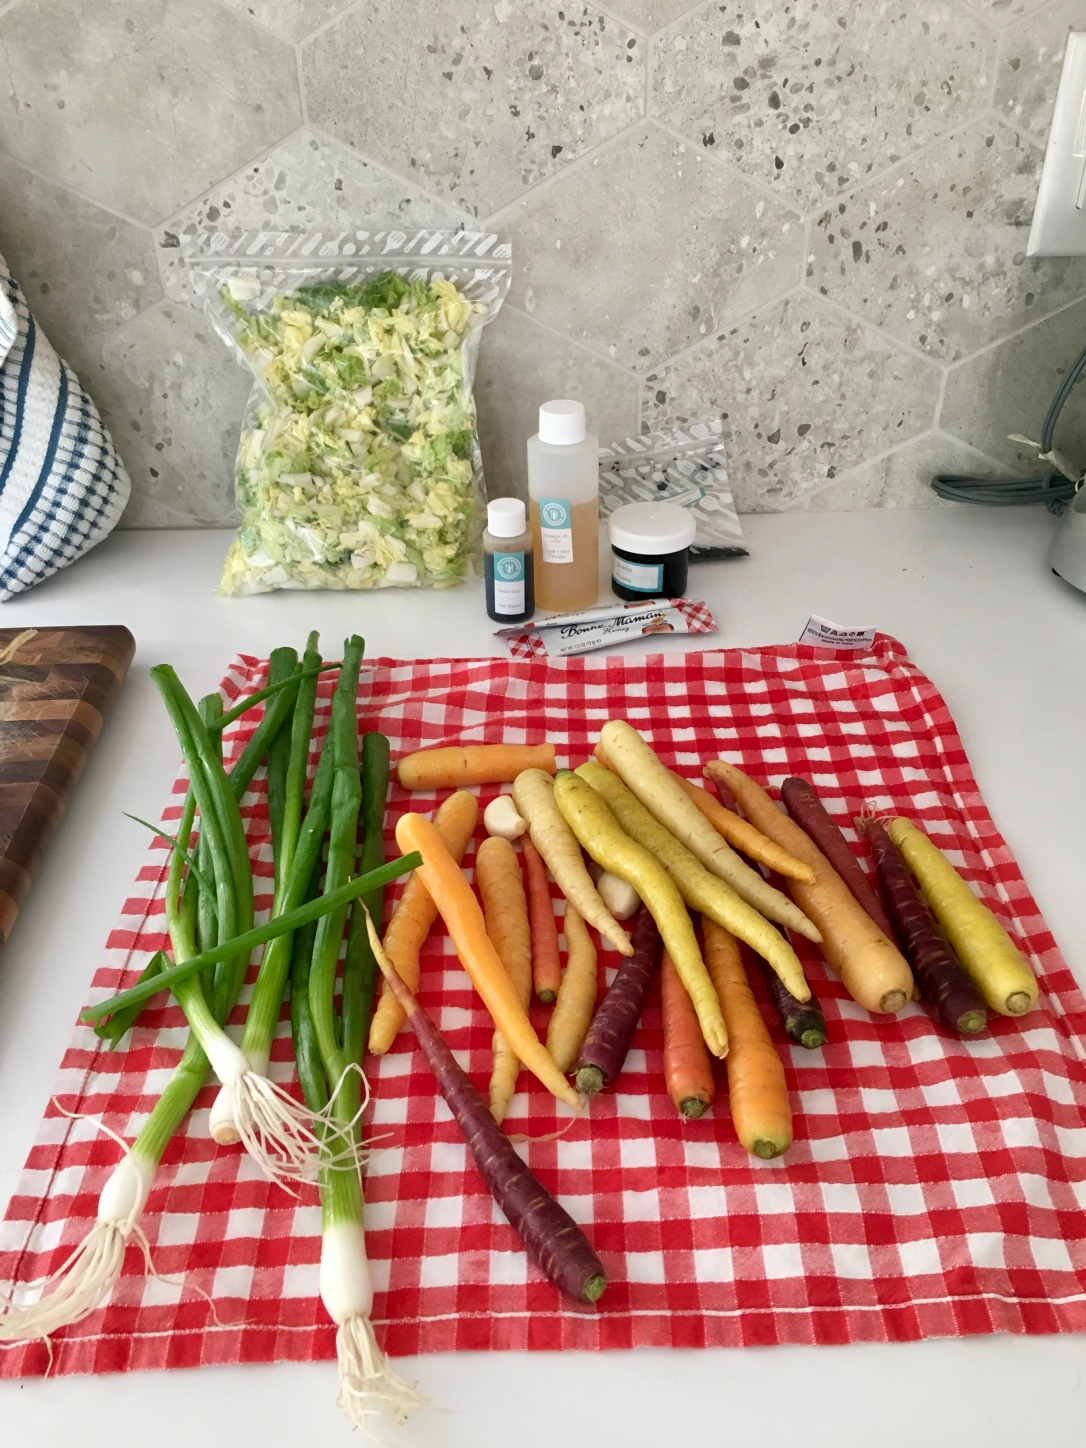 Mise en place for a Good Food recipe